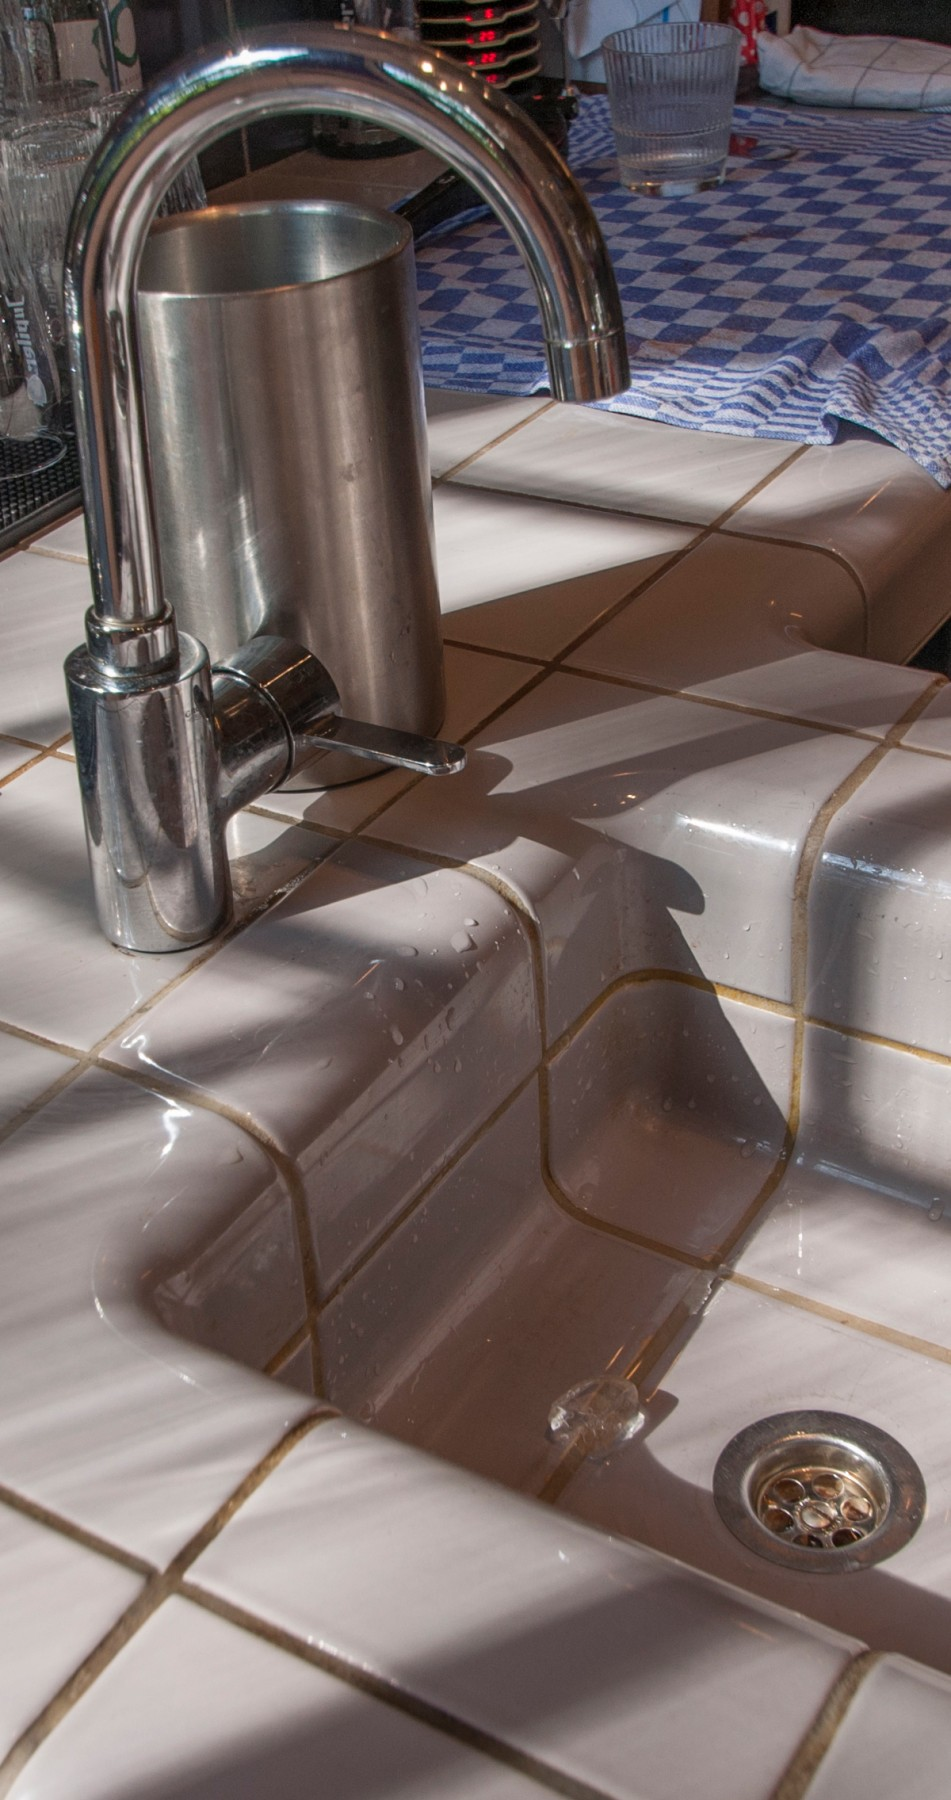 three-dimensional tiles in sink, tiles with rounded 3d corners and integrated functions